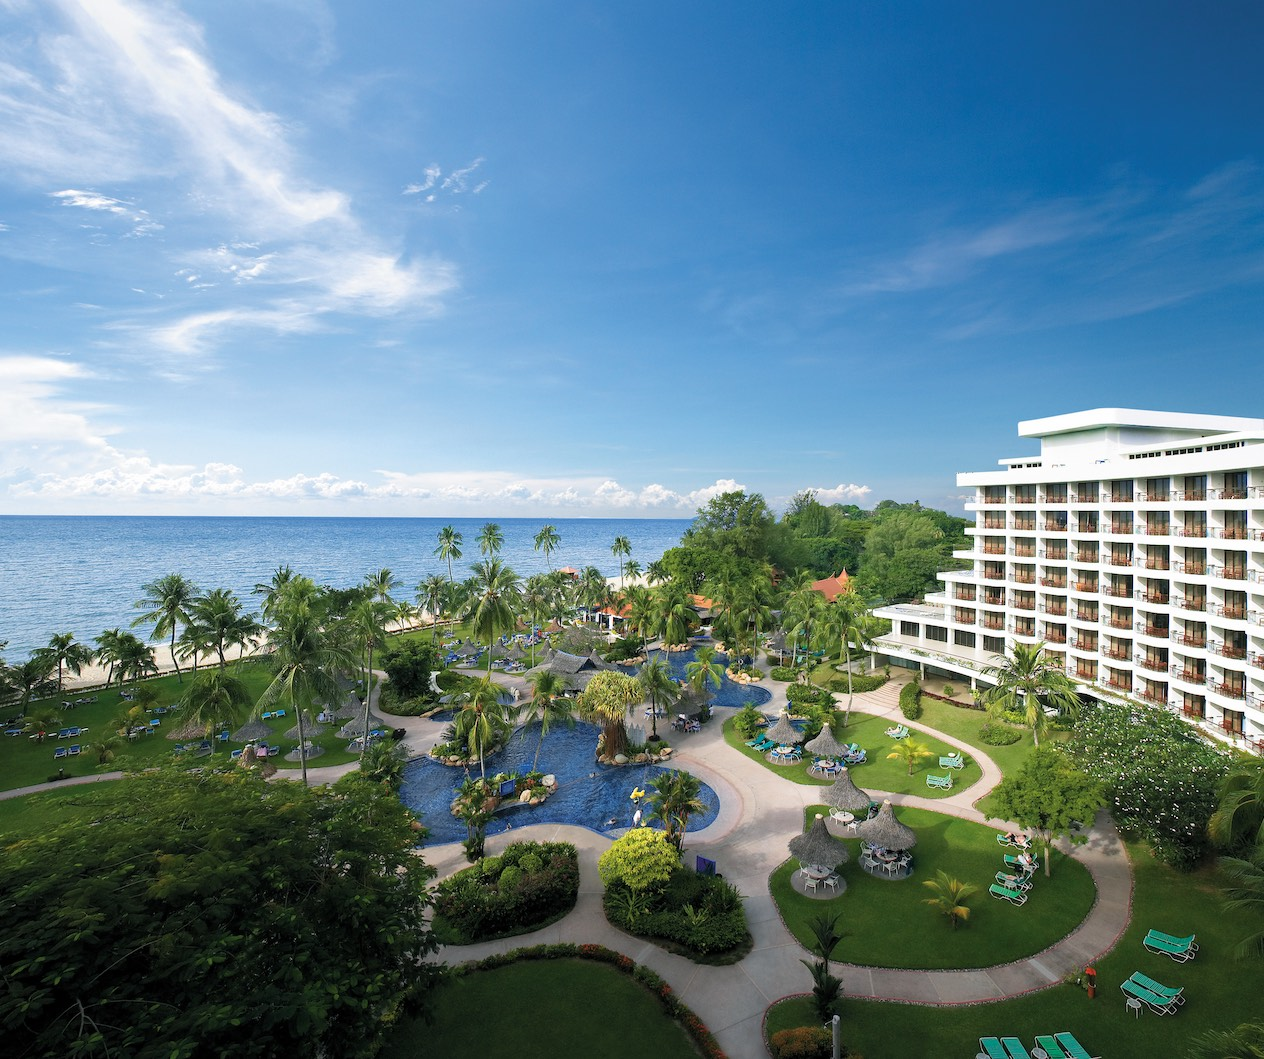 Golden Sands Resort, Penang - Best Places to Visit in Malayisa in 3 Days